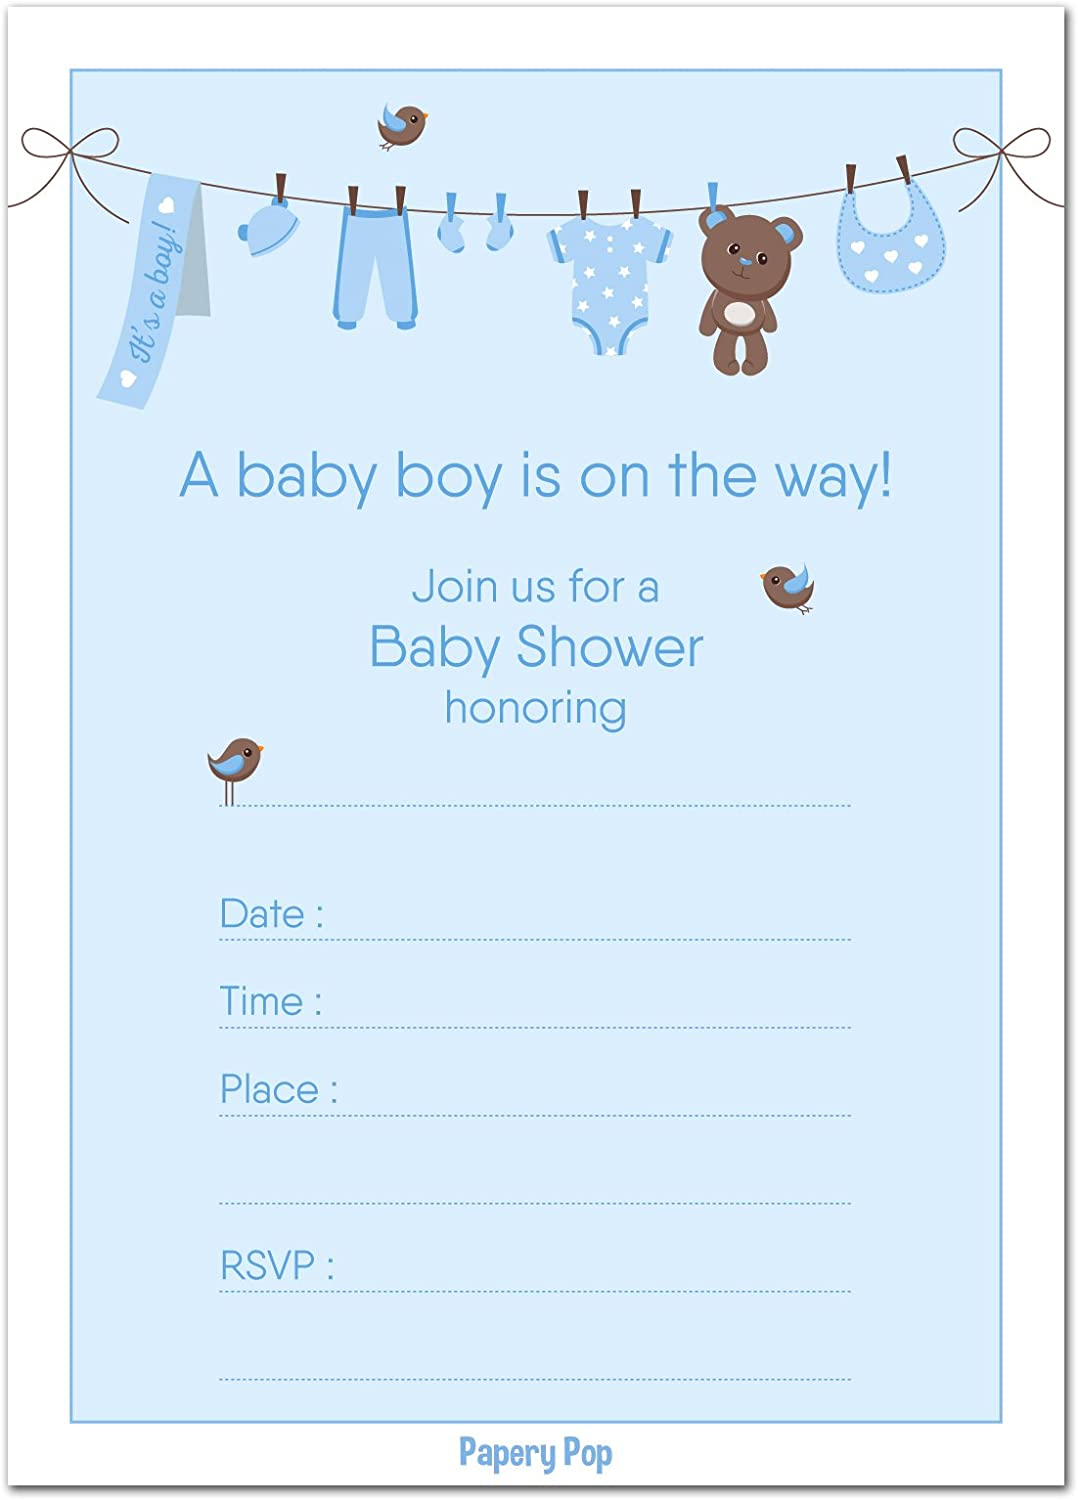 30 Baby Shower Invitations Boy with Envelopes (30 Pack) - Baby Boy Shower  Invite Cards - Fits Perfectly with Blue Baby Shower Decorations and  Supplies for ...